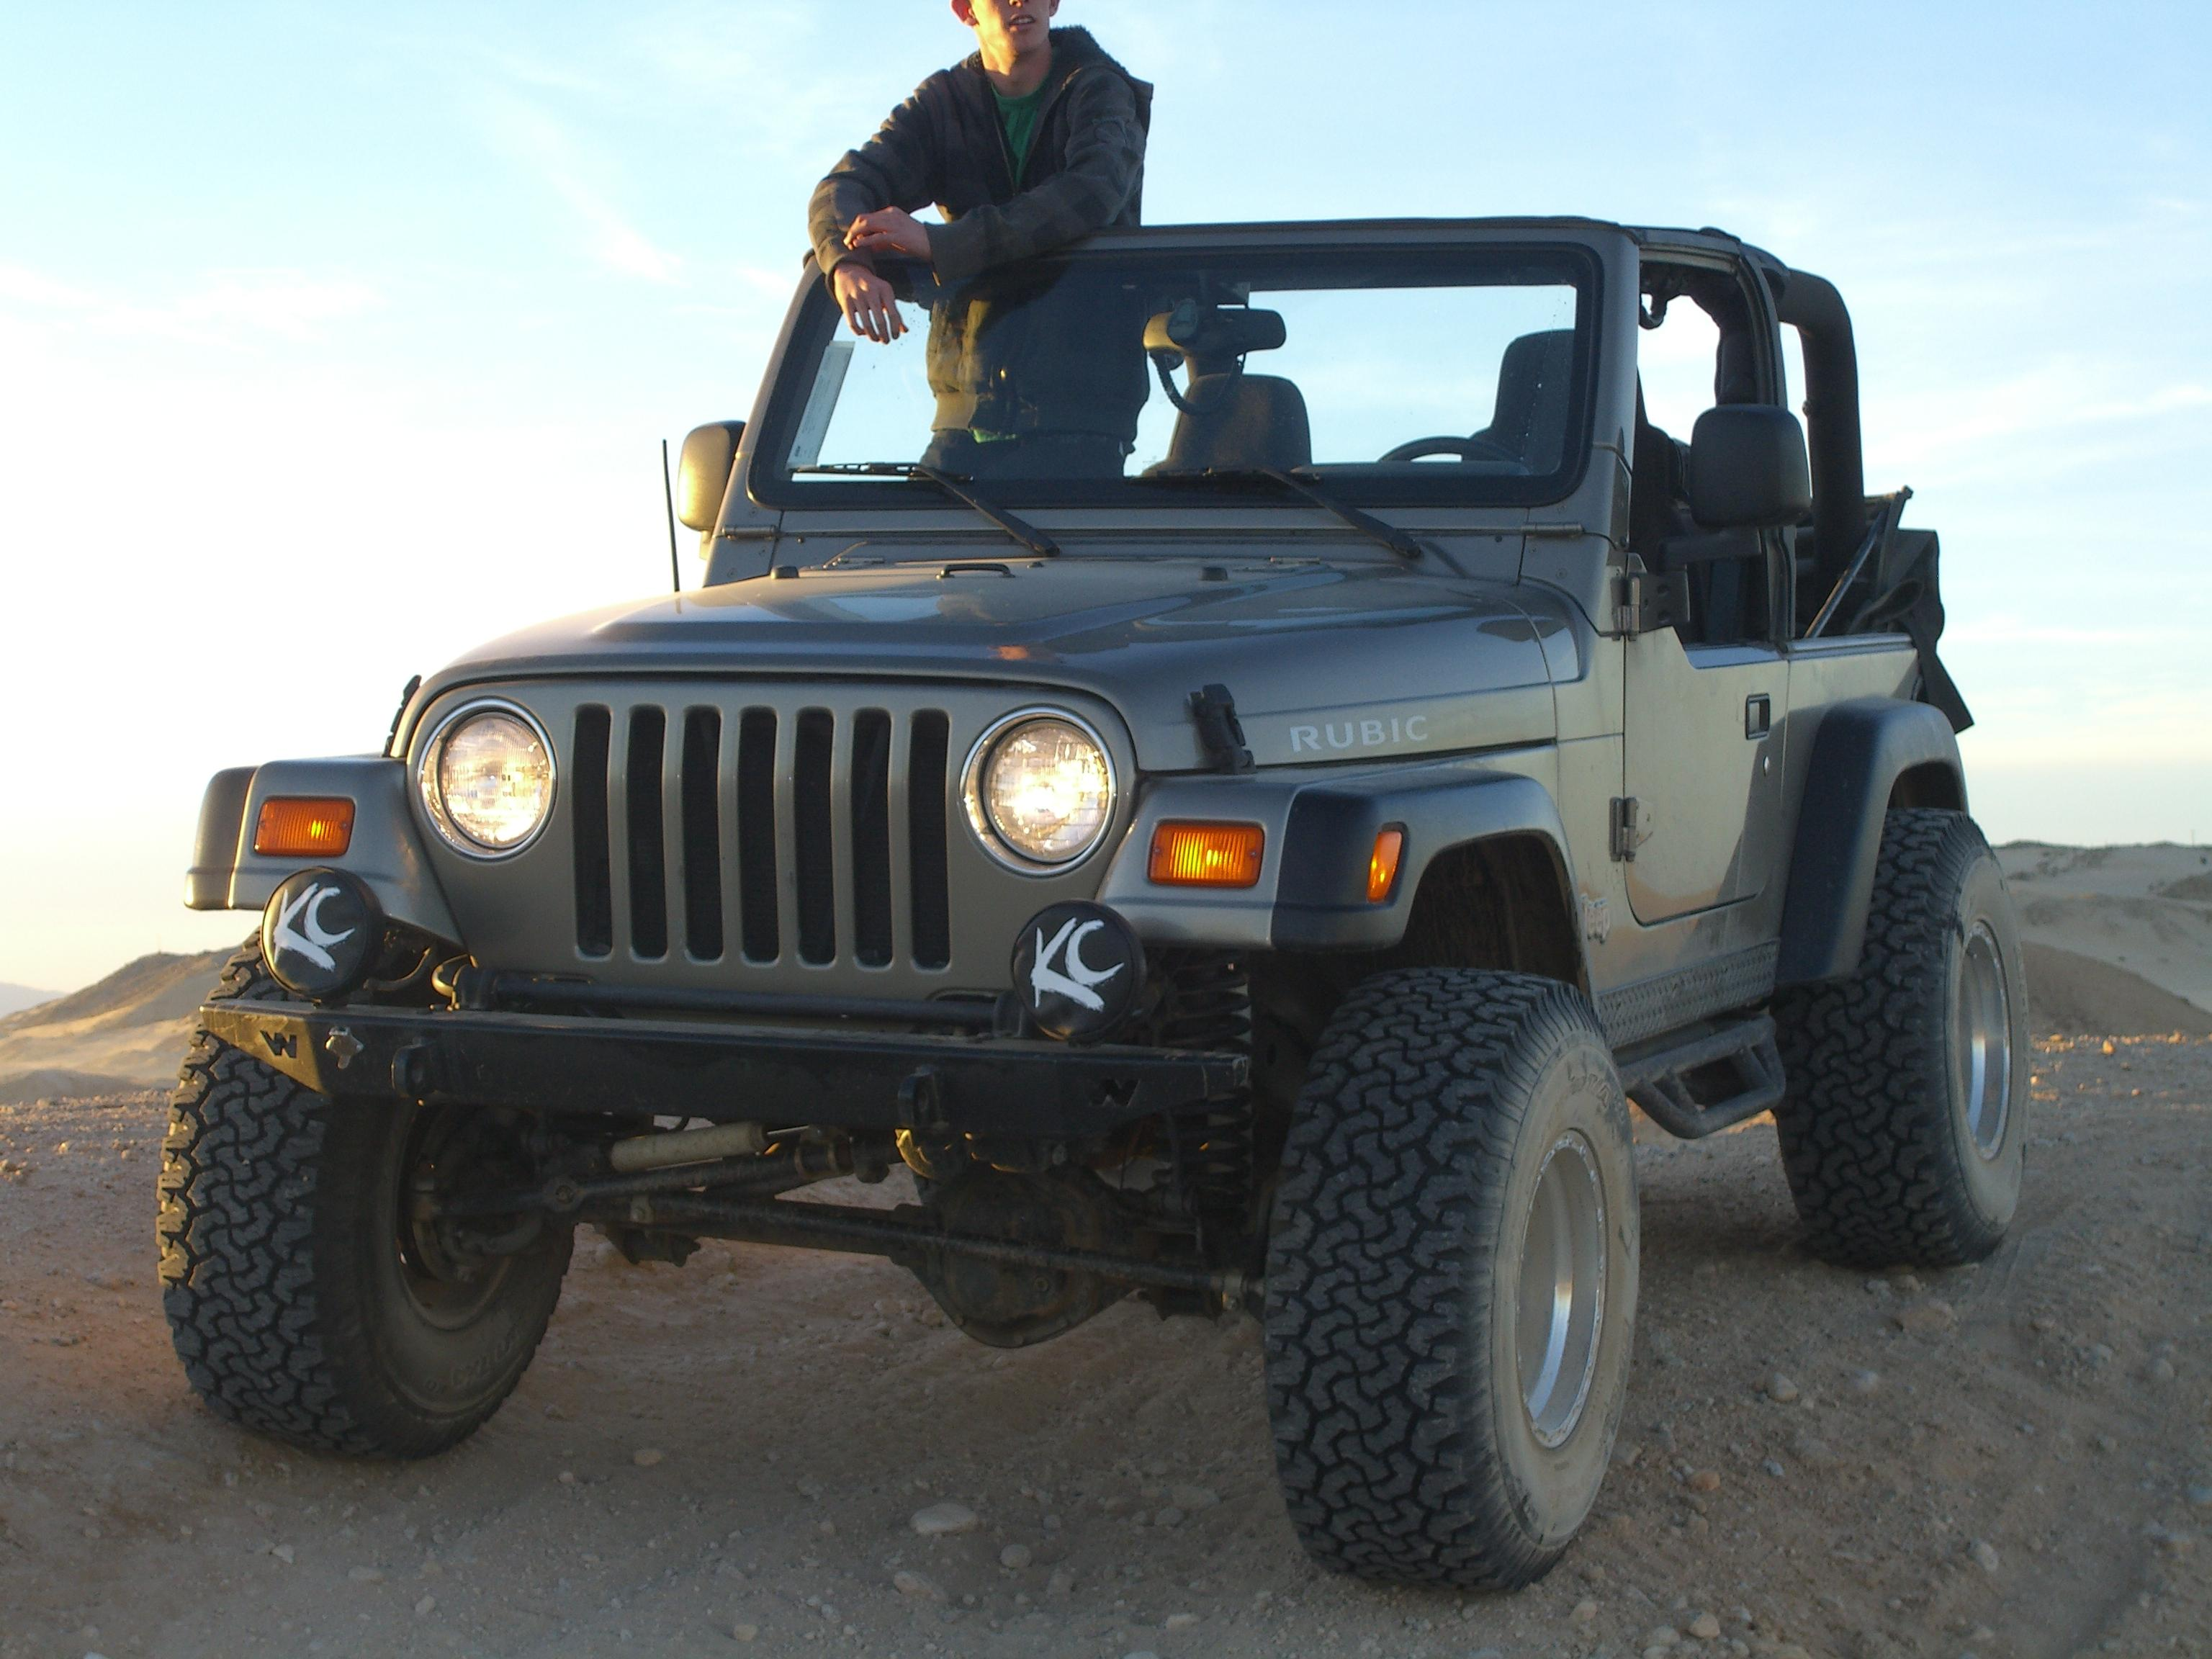 anderfu 2003 jeep wrangler specs photos modification info at cardomain. Black Bedroom Furniture Sets. Home Design Ideas